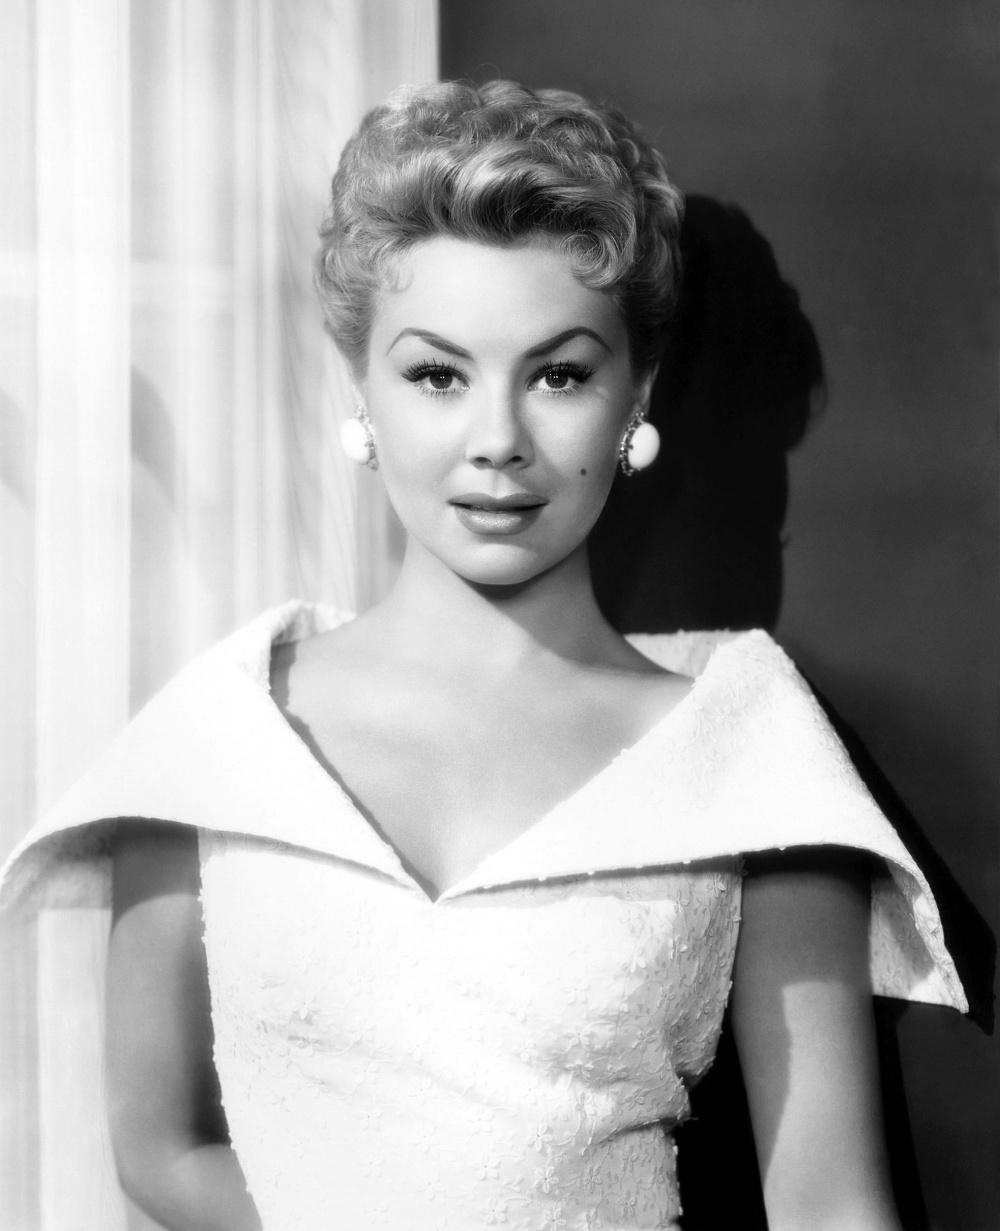 Photo №16744 Mitzi Gaynor.